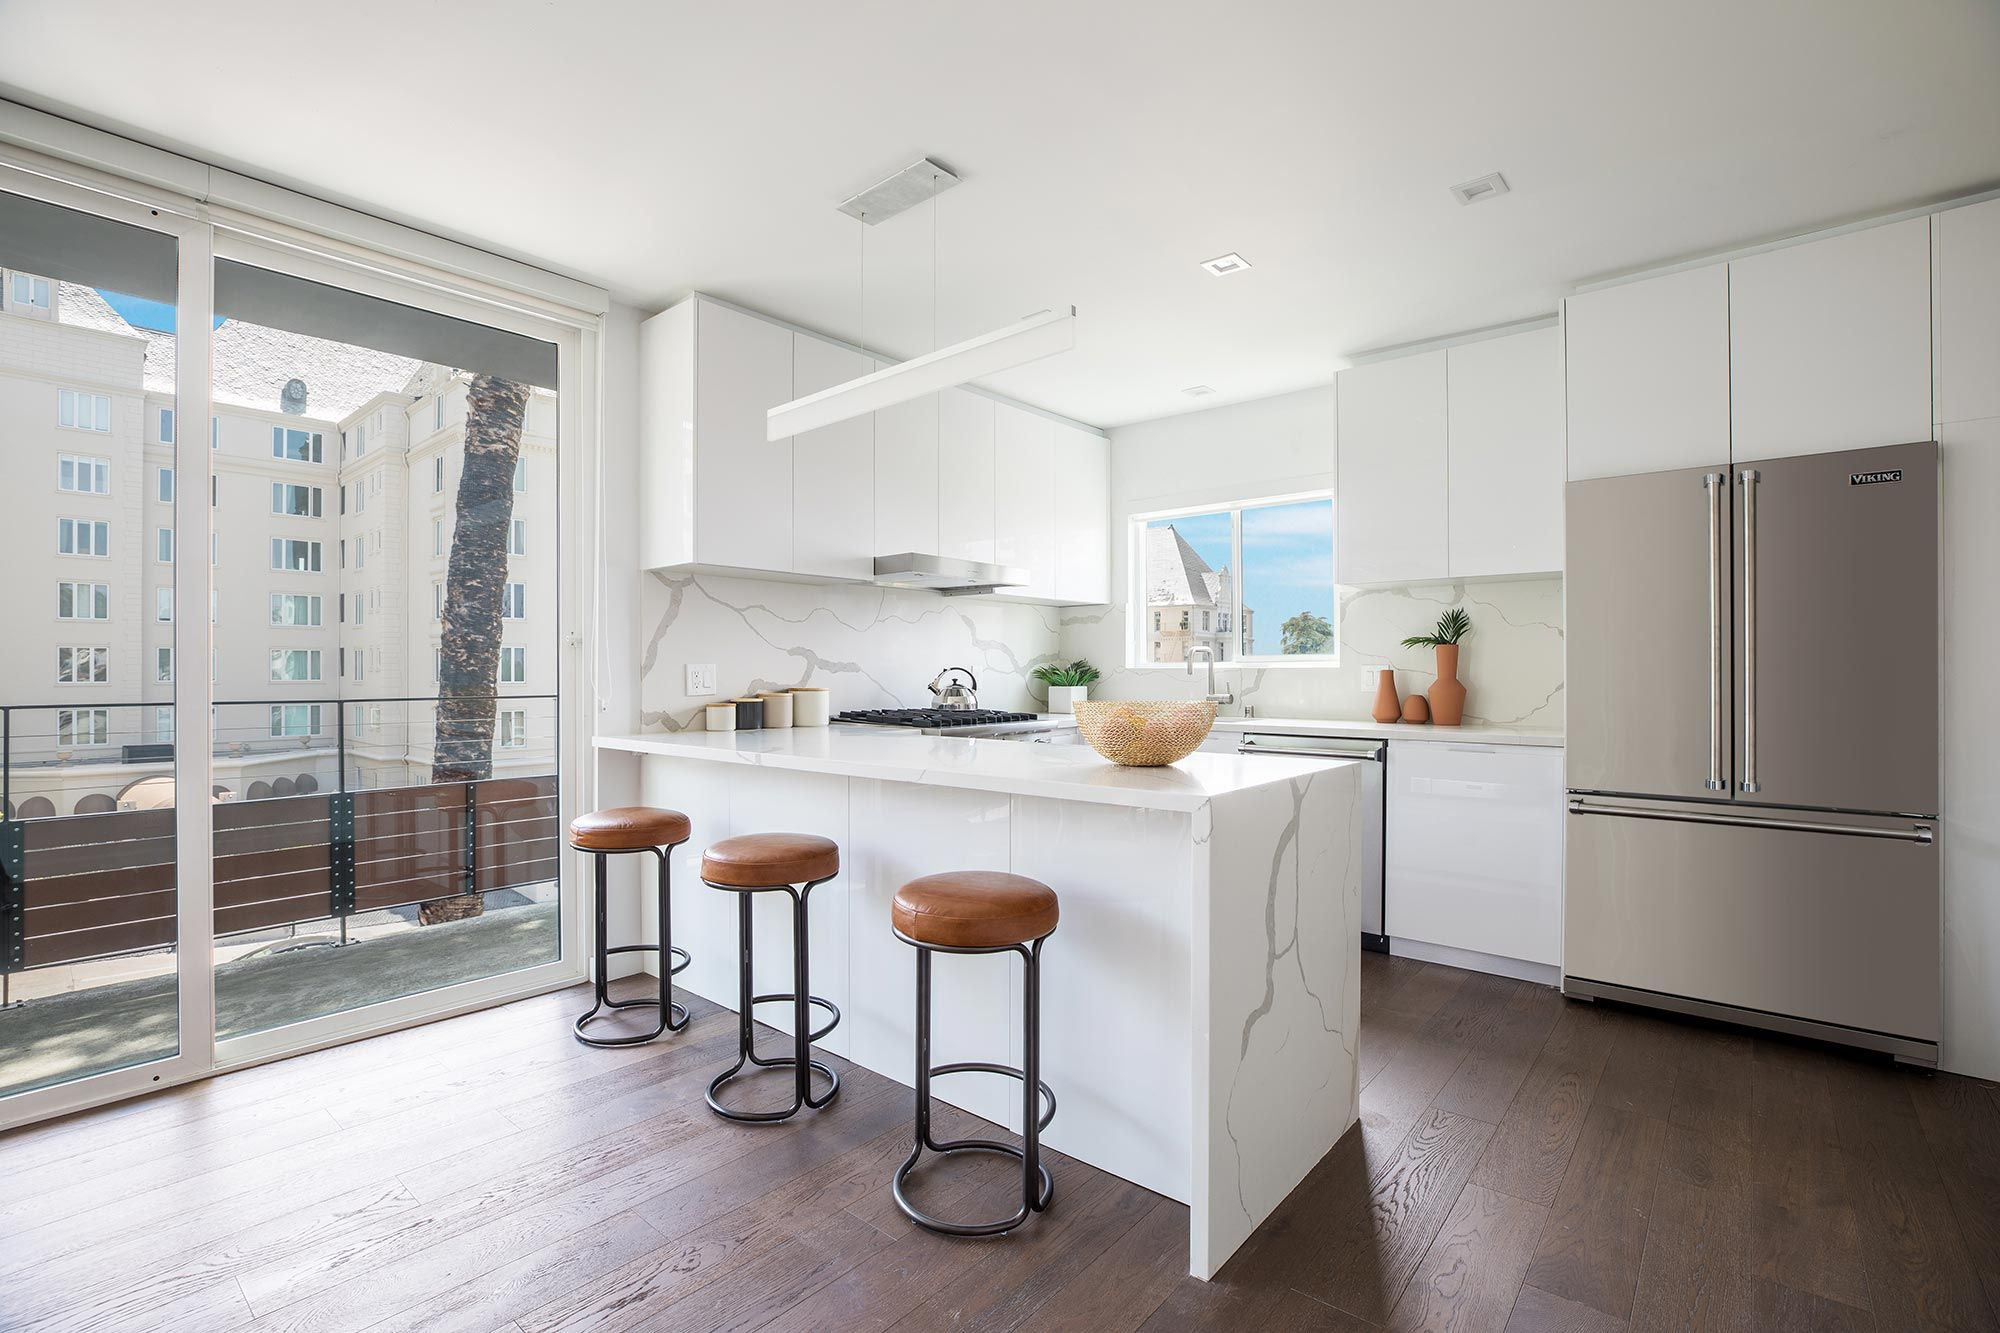 Luxury Apartments In West Hollywood Ca For Rent Element Weho Luxury Apartments Floor Design Apartment Kitchen